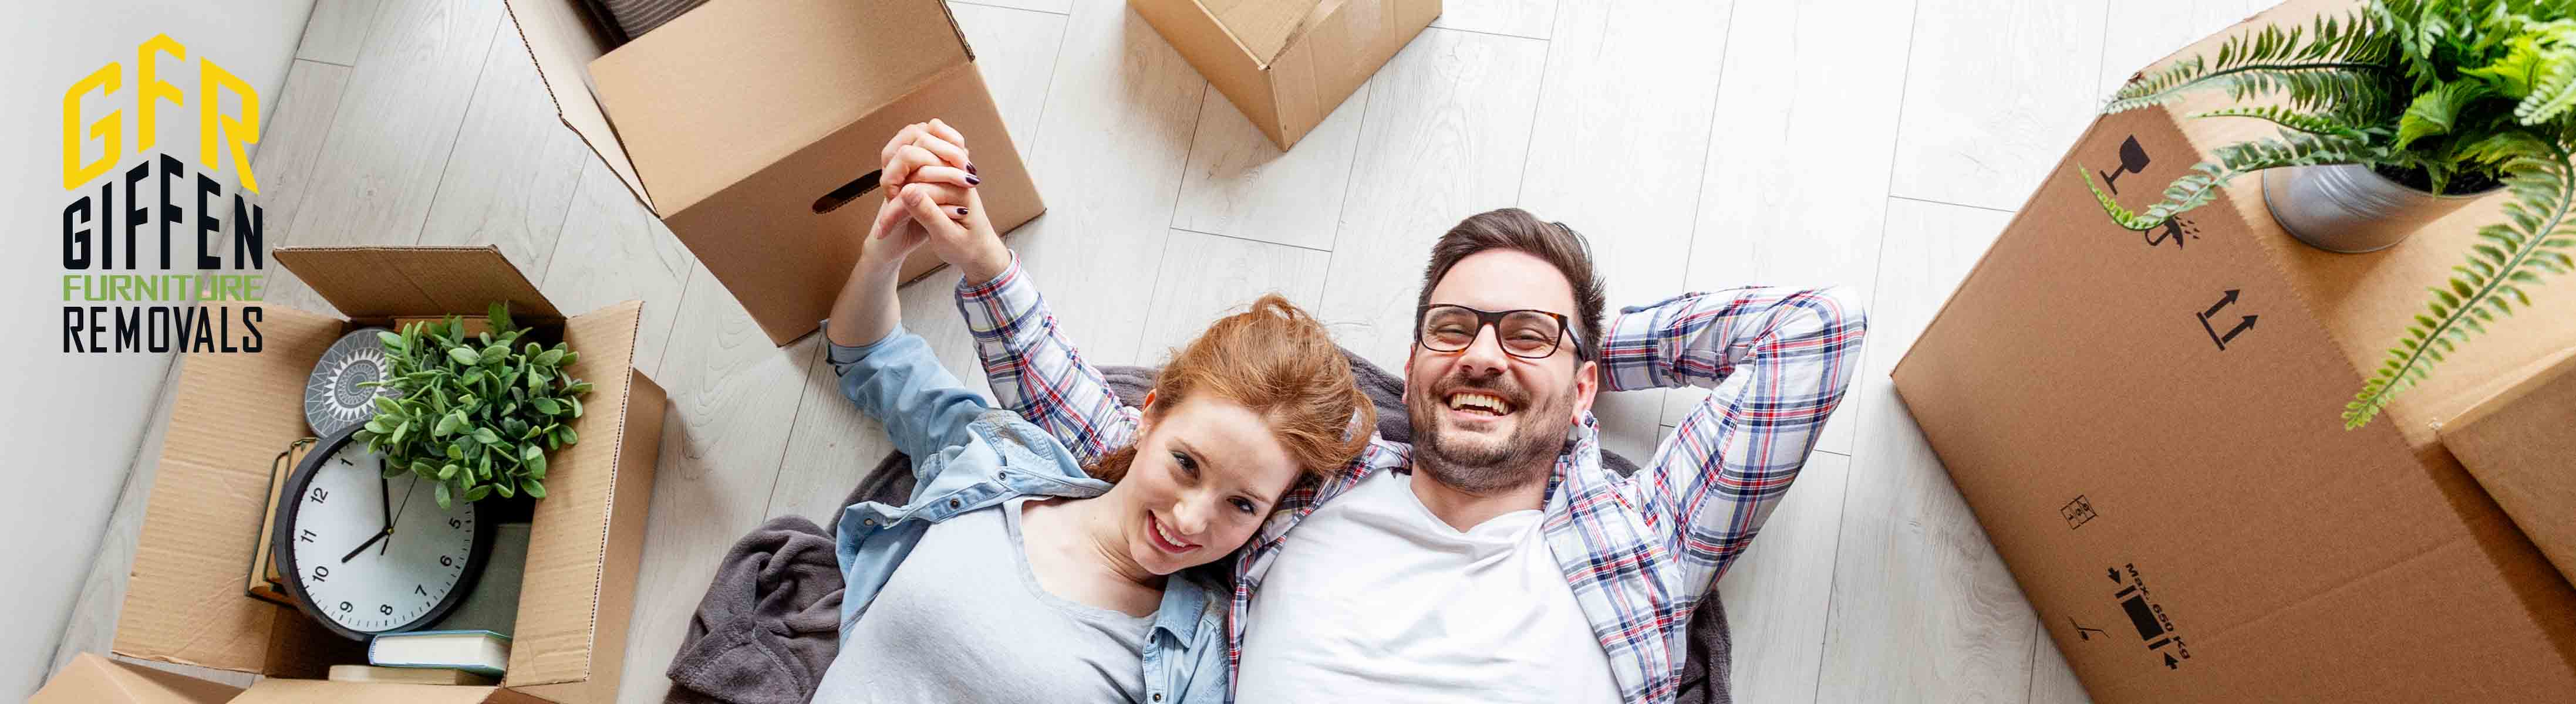 Giffen Furniture Removals Hiring The Perfect Furniture Removalist In Brisbane